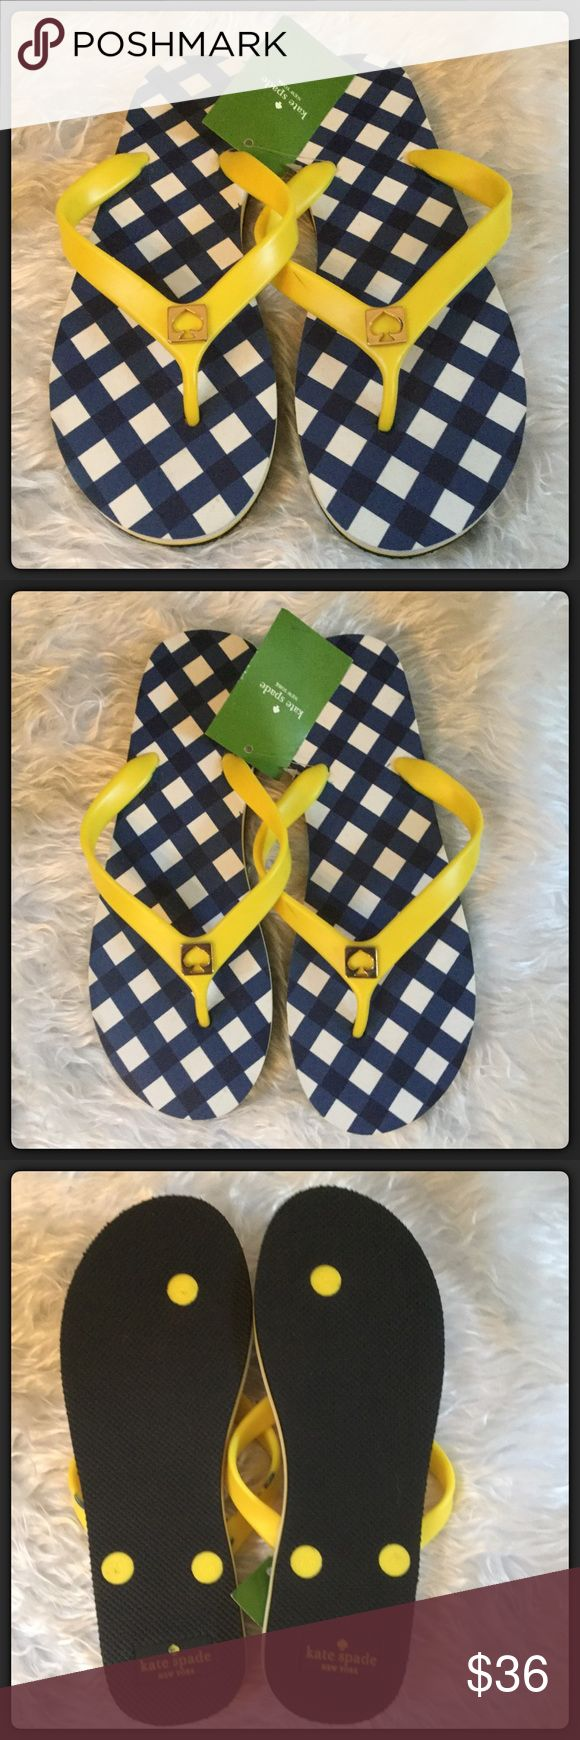 🆕Kate Spade Flip Flops Super cute and fun yellow with blue flip flops by Kate Spade. Size 7. New with tag. Medium yellow color with a fun blue and white design. kate spade Shoes Sandals